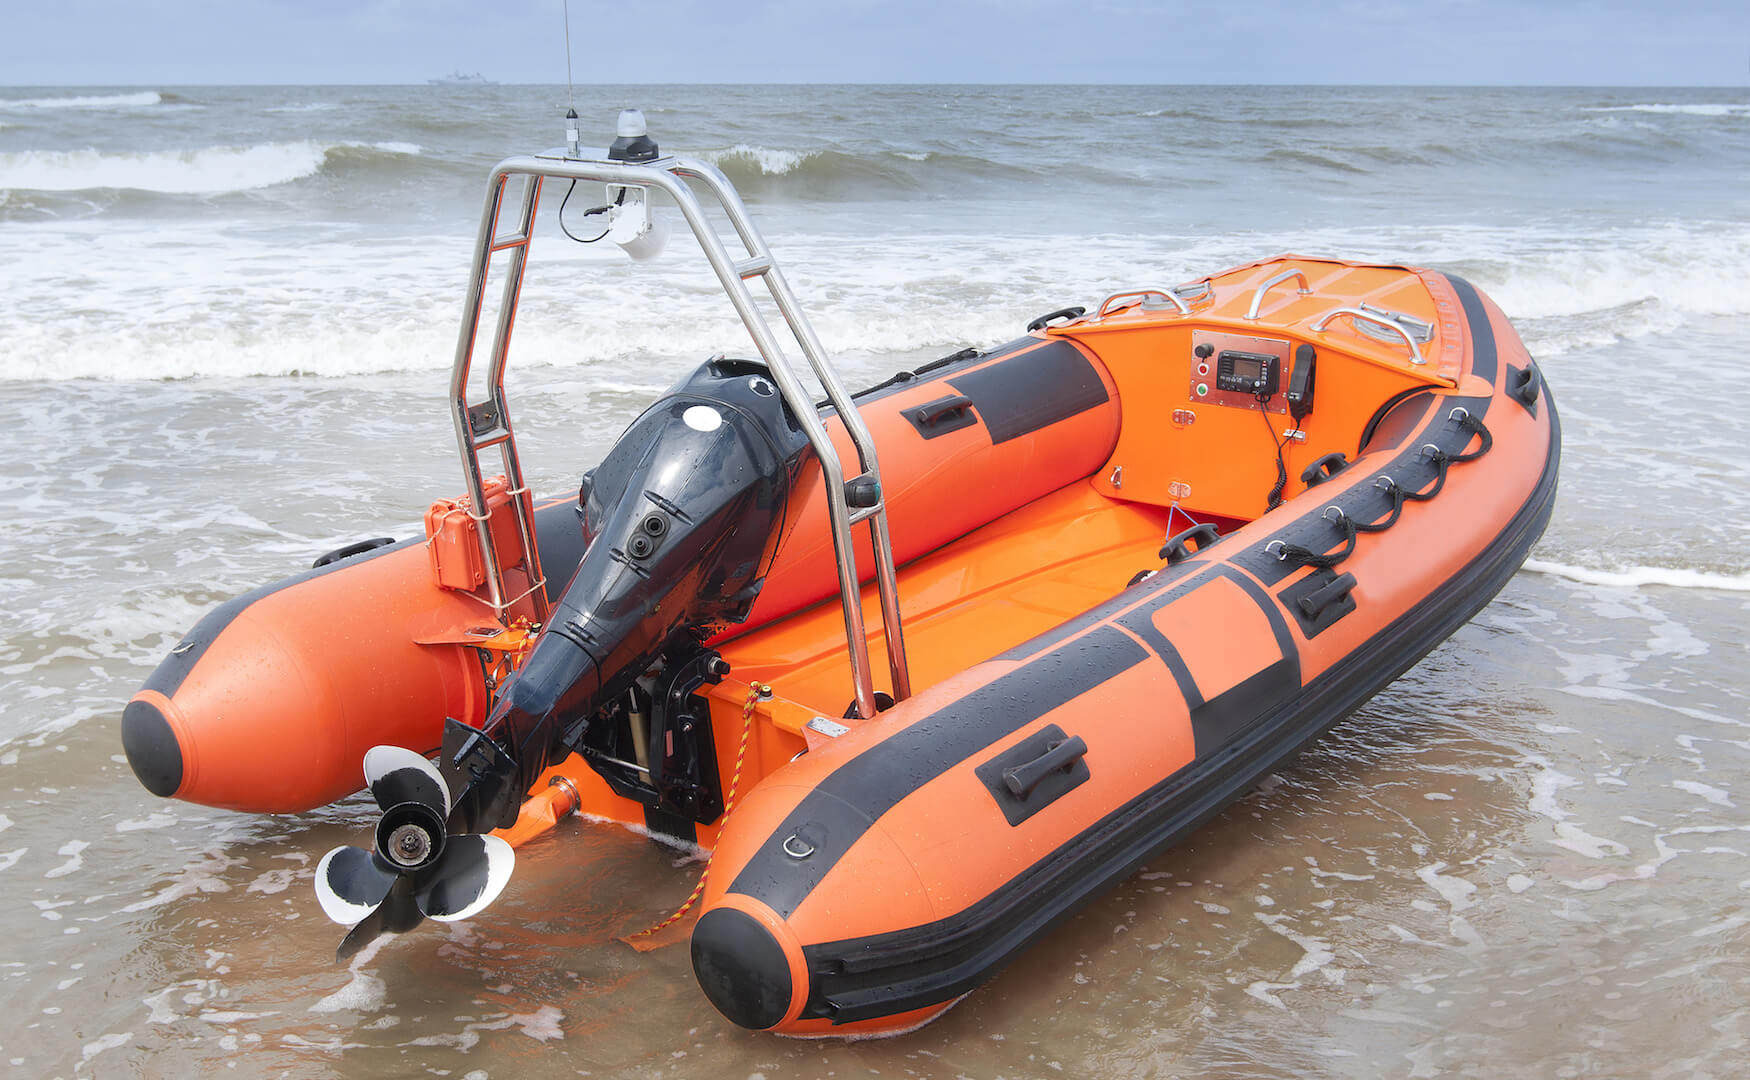 Inflatable boat on beach